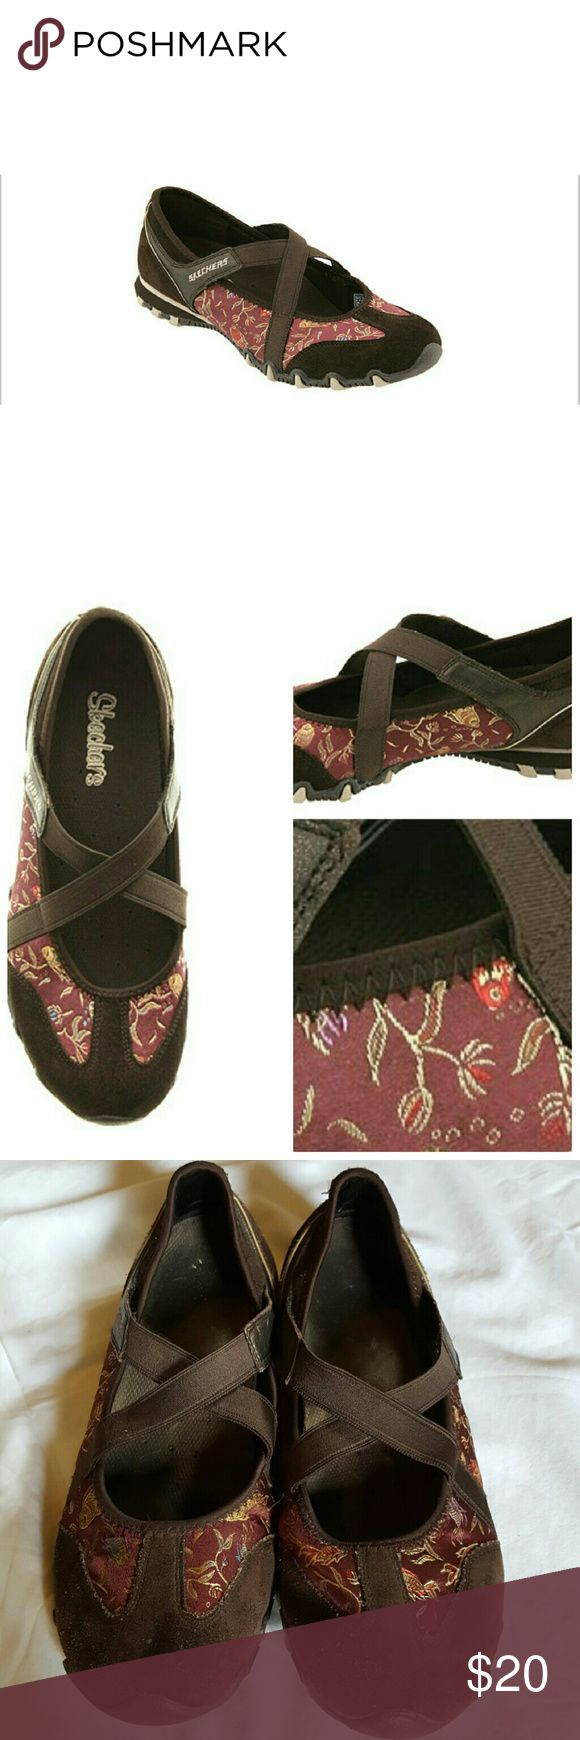 🆕LISTING💥Skechers Slip On Walking Shoe Brown leather slip on shoe with crossing straps across the top. It also has an Asian inspired design with Koi fish on a maroon background. They have only been worn a few times. They just aren't my style. The style is called the Water Lily # 21437. Skechers Shoes Sneakers